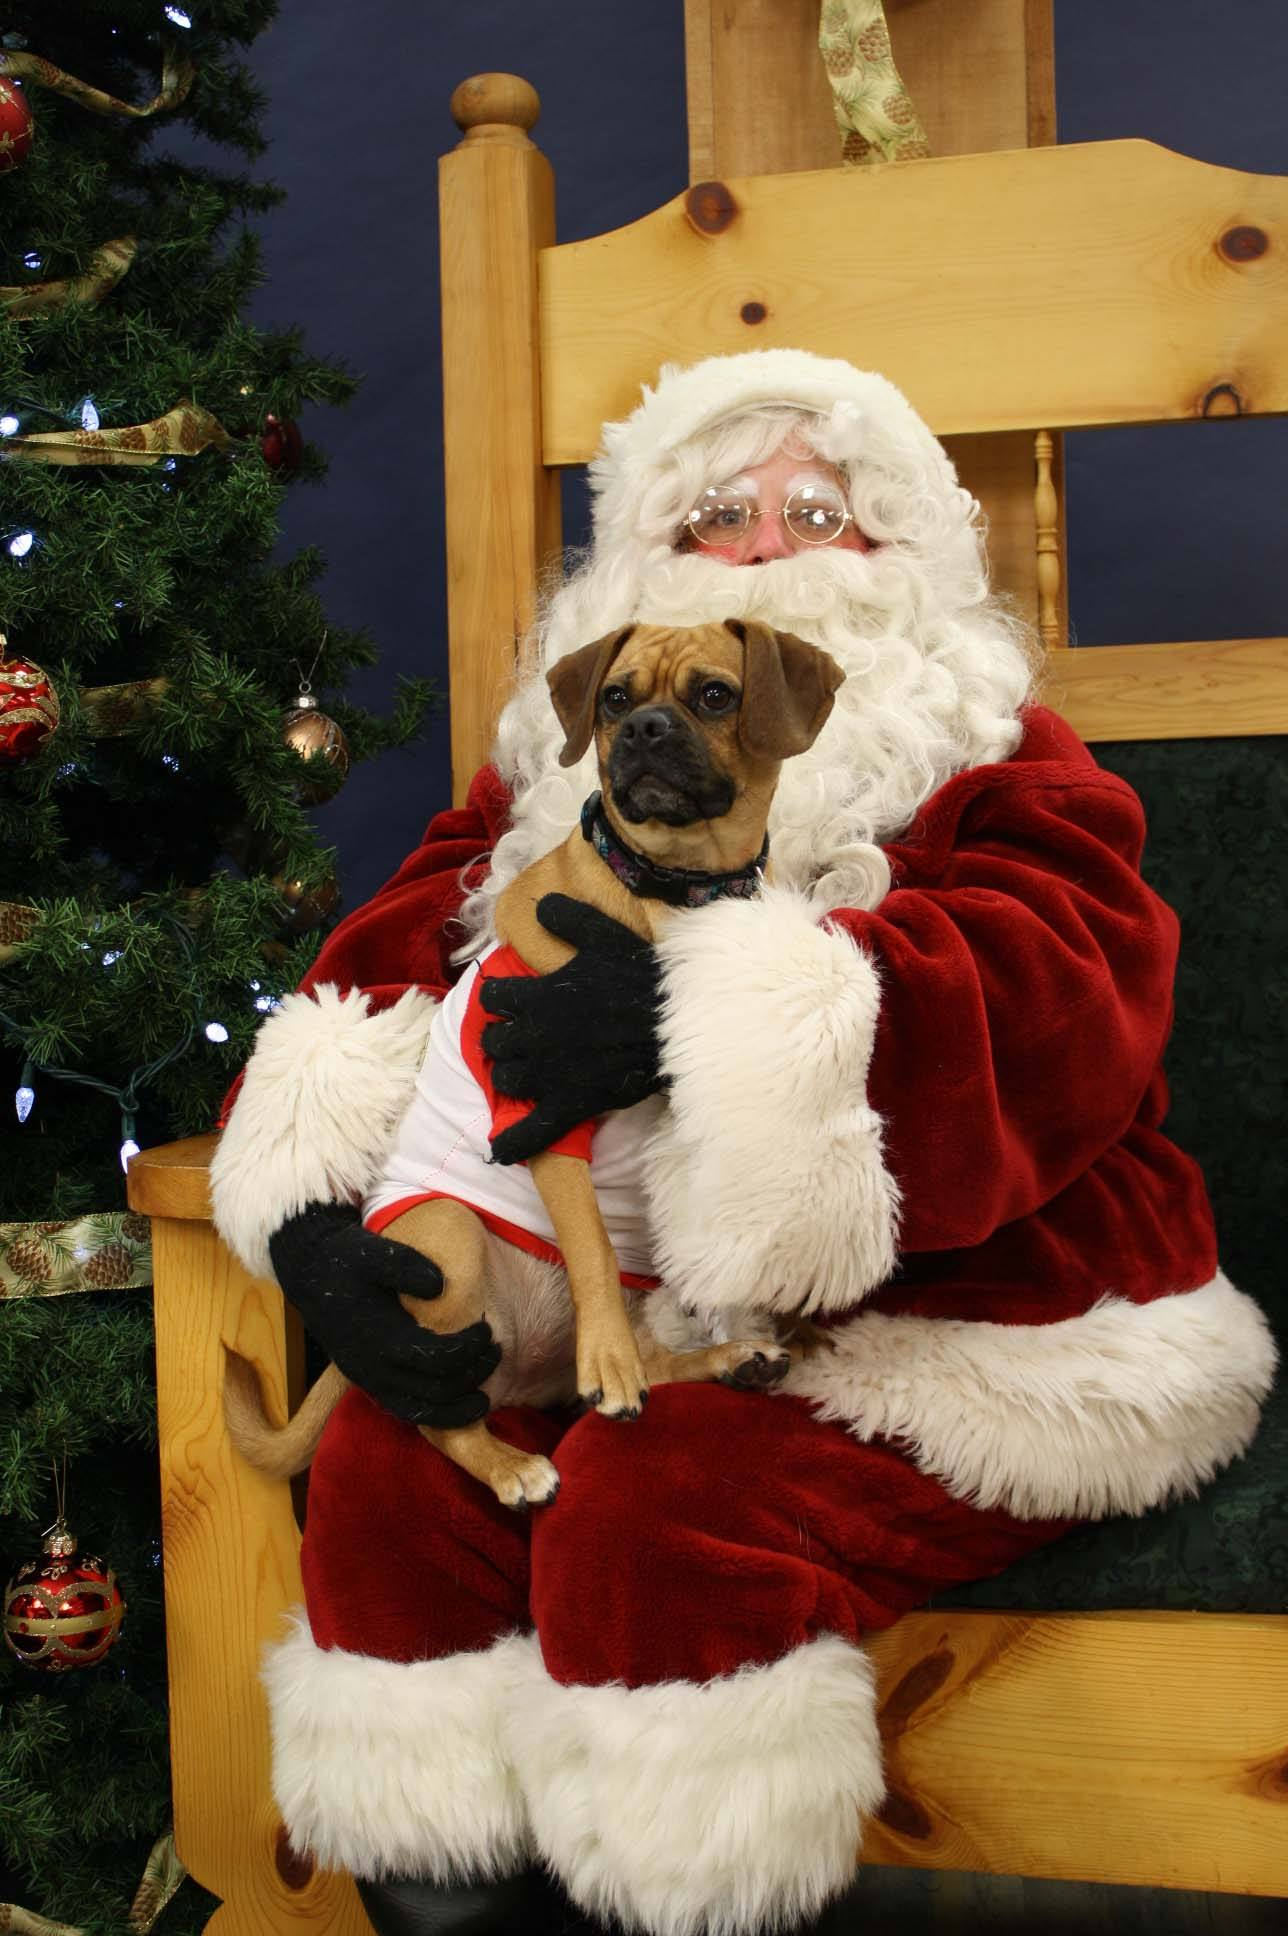 christmas furry friends dressed up for the holidays - Christmas Furry